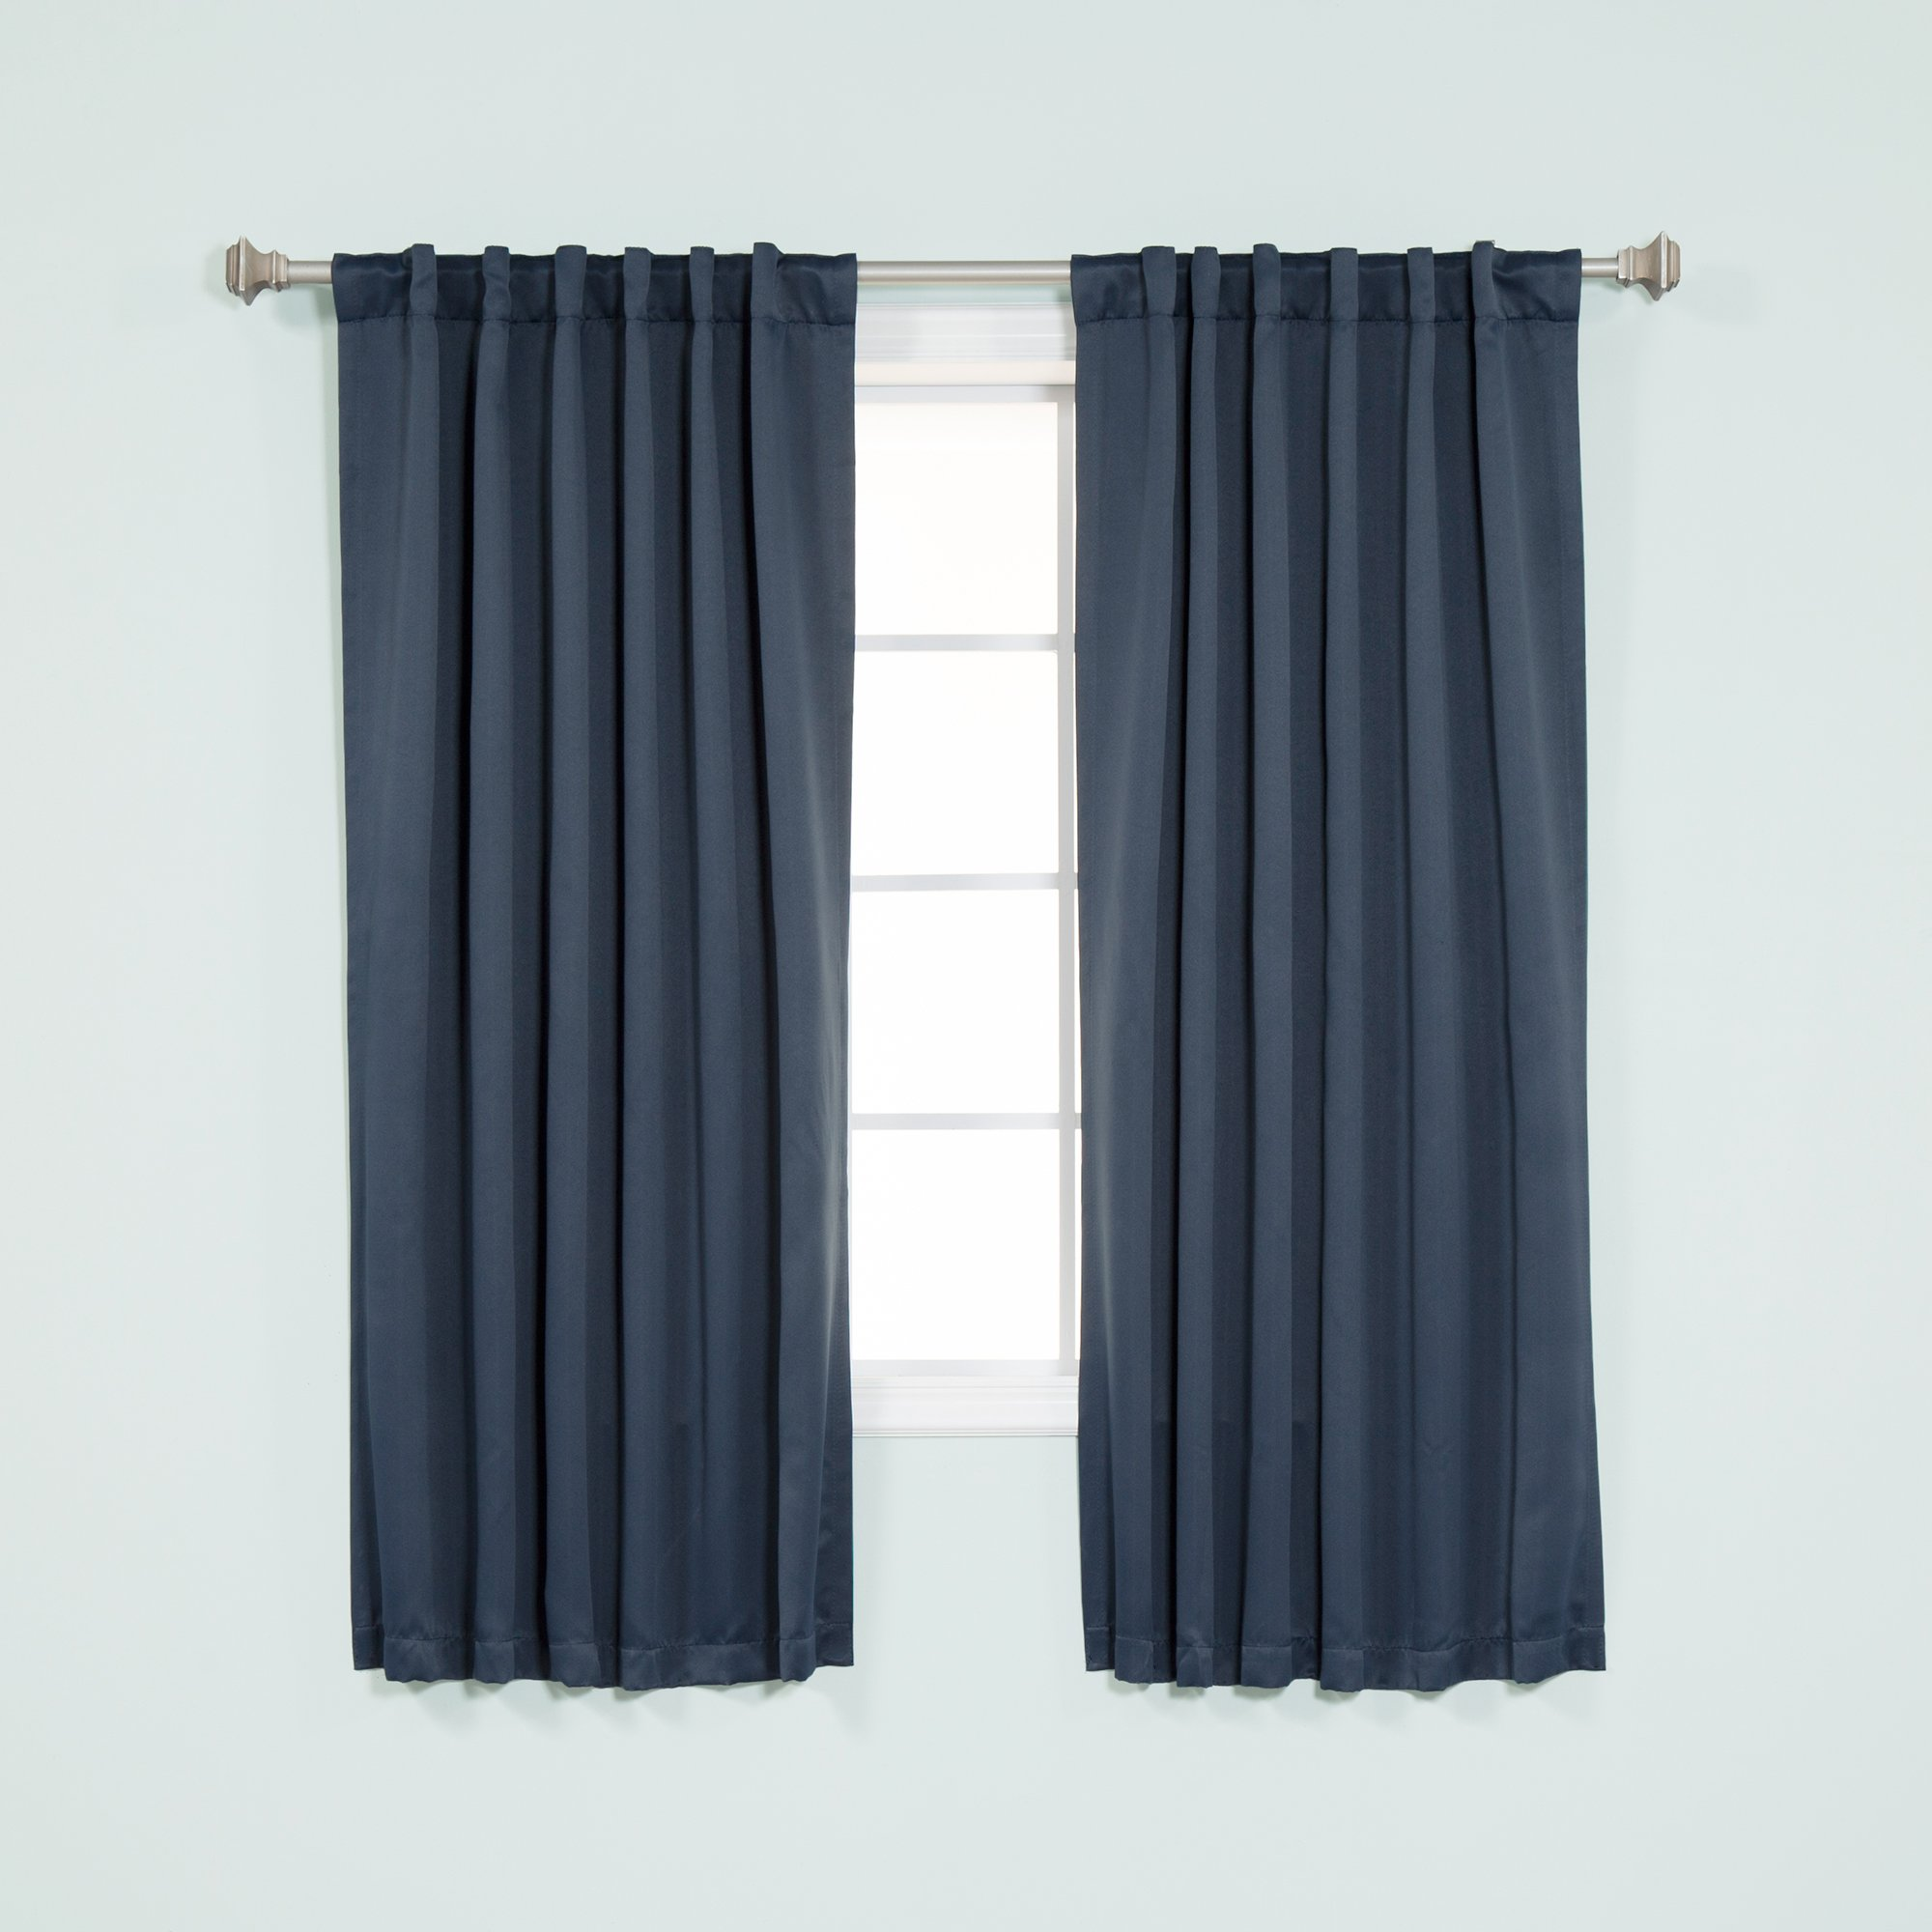 Best Home Fashion Thermal Insulated Blackout Curtains - Back Tab/ Rod Pocket - Navy - 52''W x 63''L - (Set of 2 Panels)